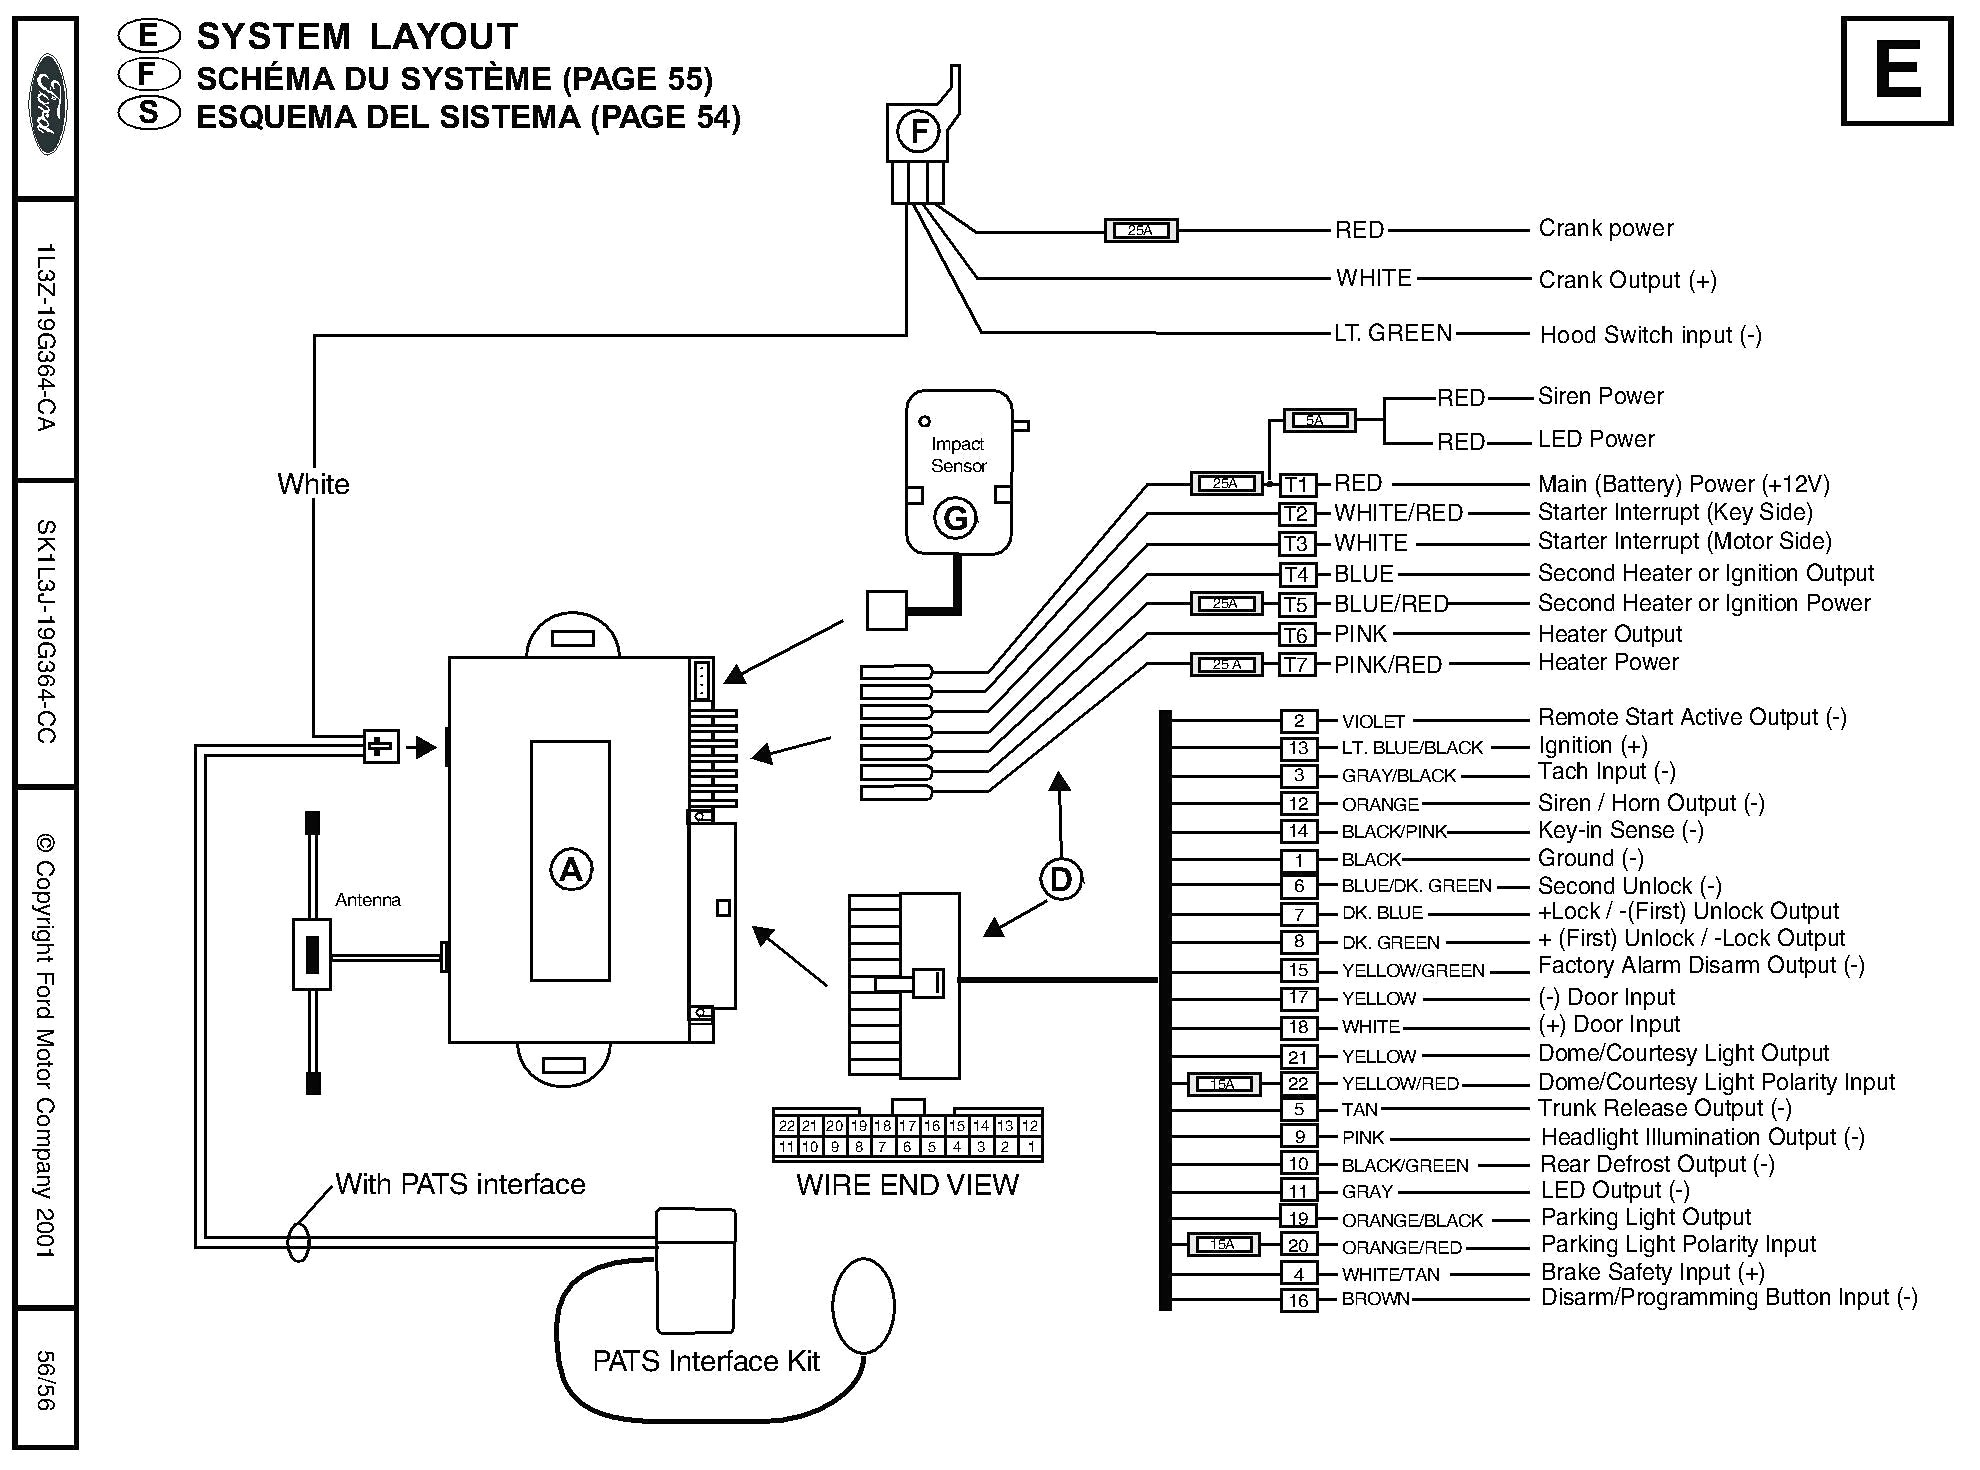 1988 ford f700 wiring diagram starting know about wiring diagram \u2022  extraordinary 1988 ford econoline van wiring diagrams 1989 ford f700 wiring diagram 88 ford f700 wiring diagram